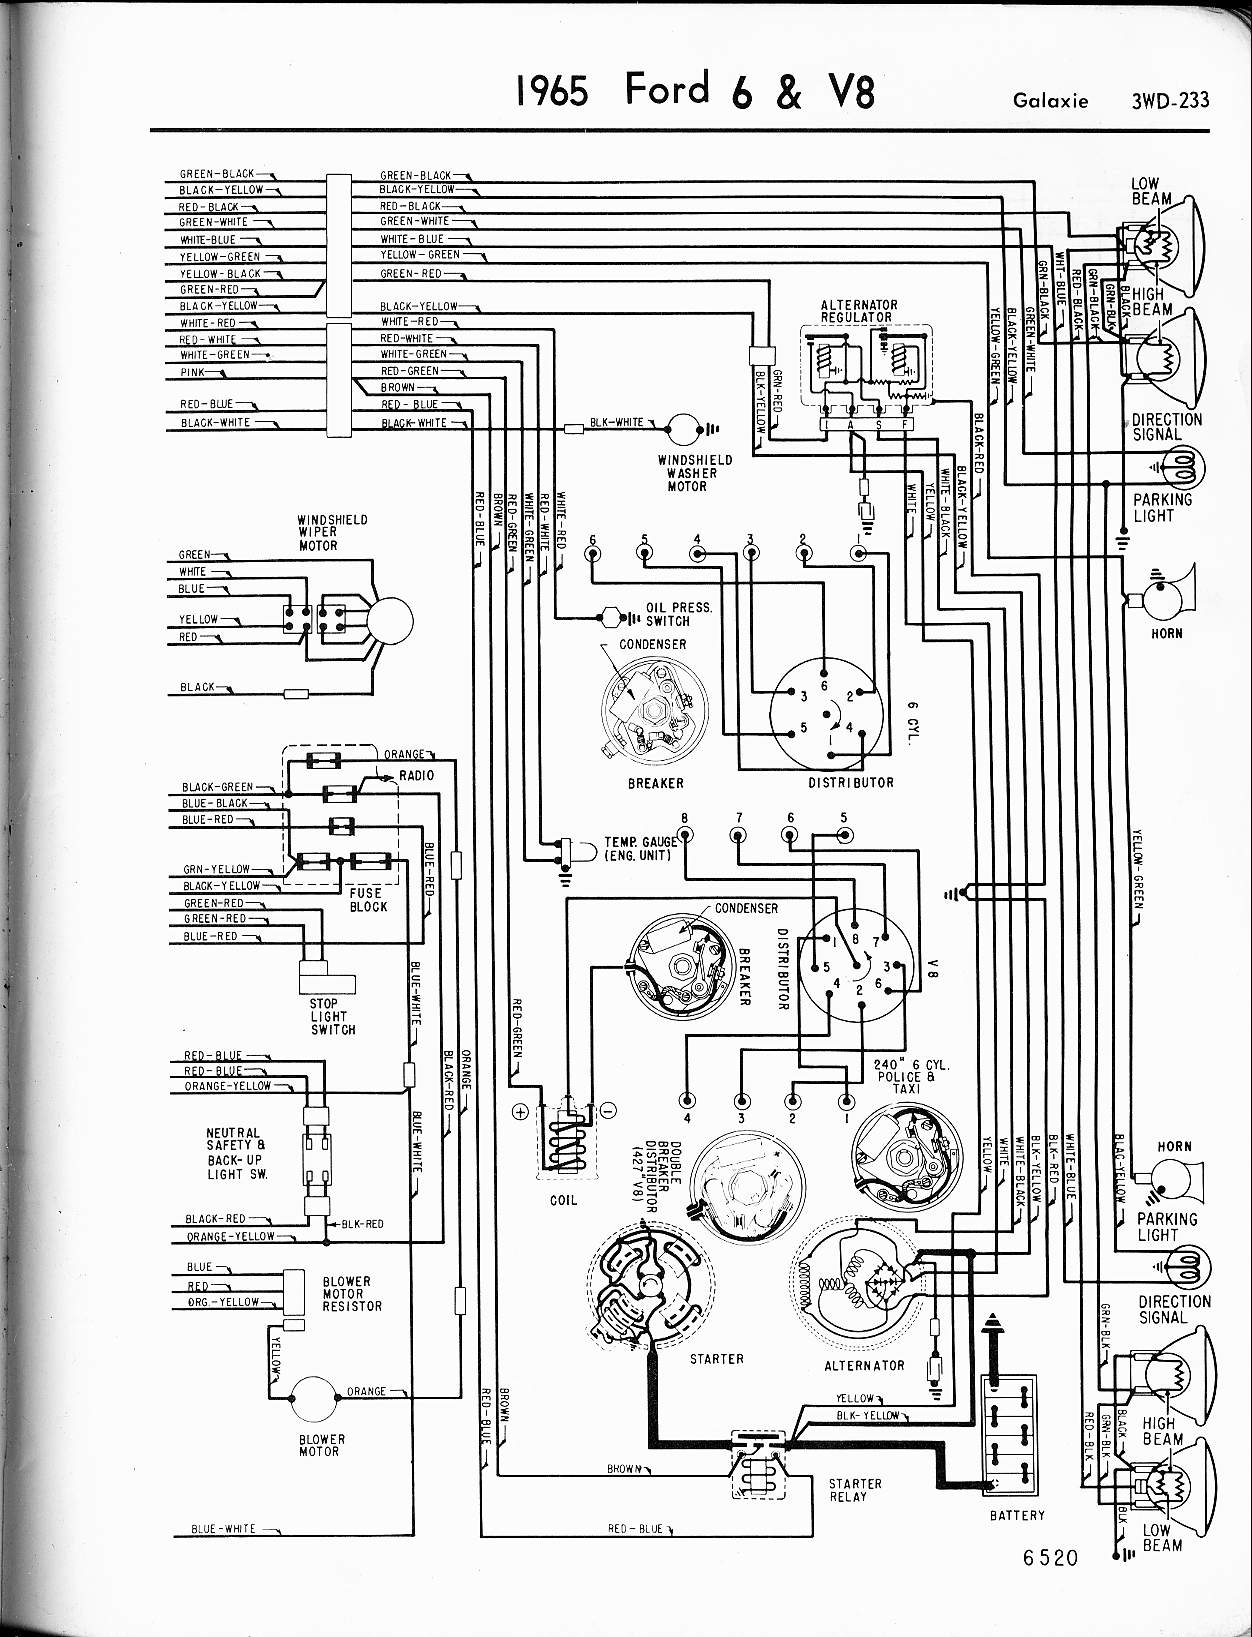 1978 ford courier wiring diagram ford f500 wiring diagram wiring diagram data  ford f500 wiring diagram wiring